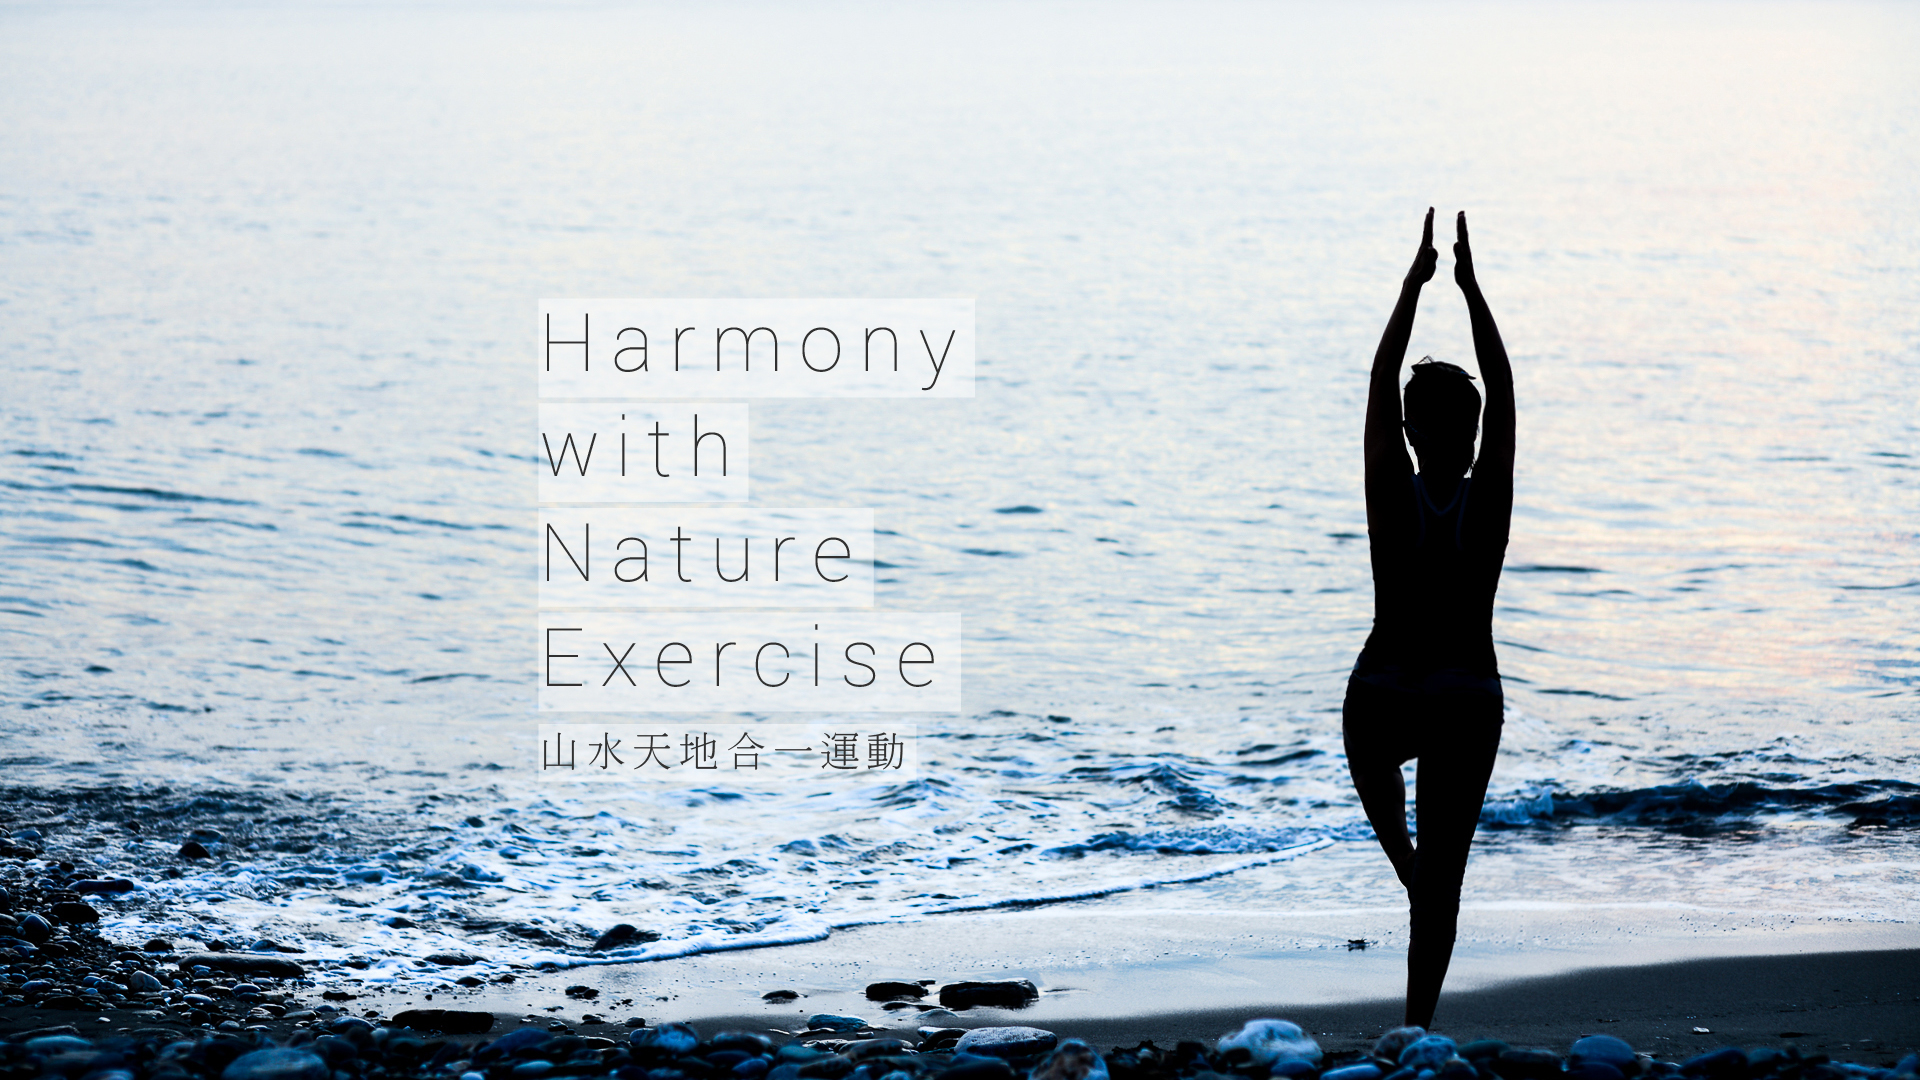 Harmony-with-Nature Exercise